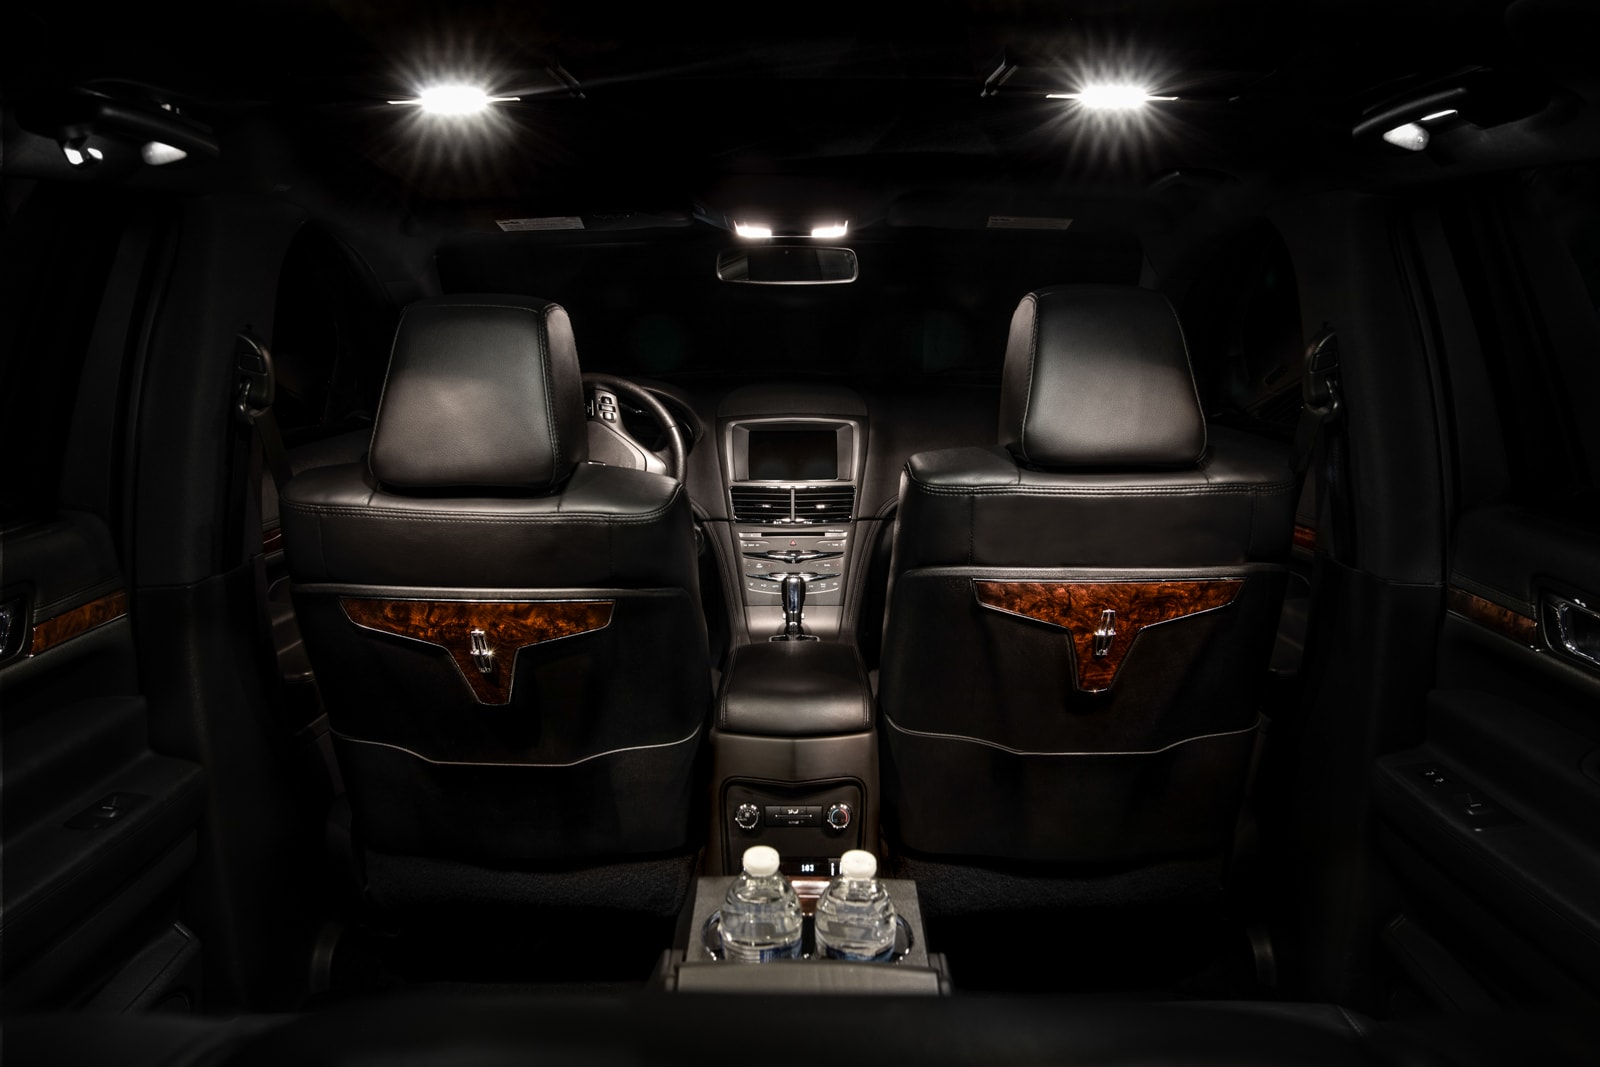 Lincoln MKT front interior, one of the vehicles available for as a limo rental.